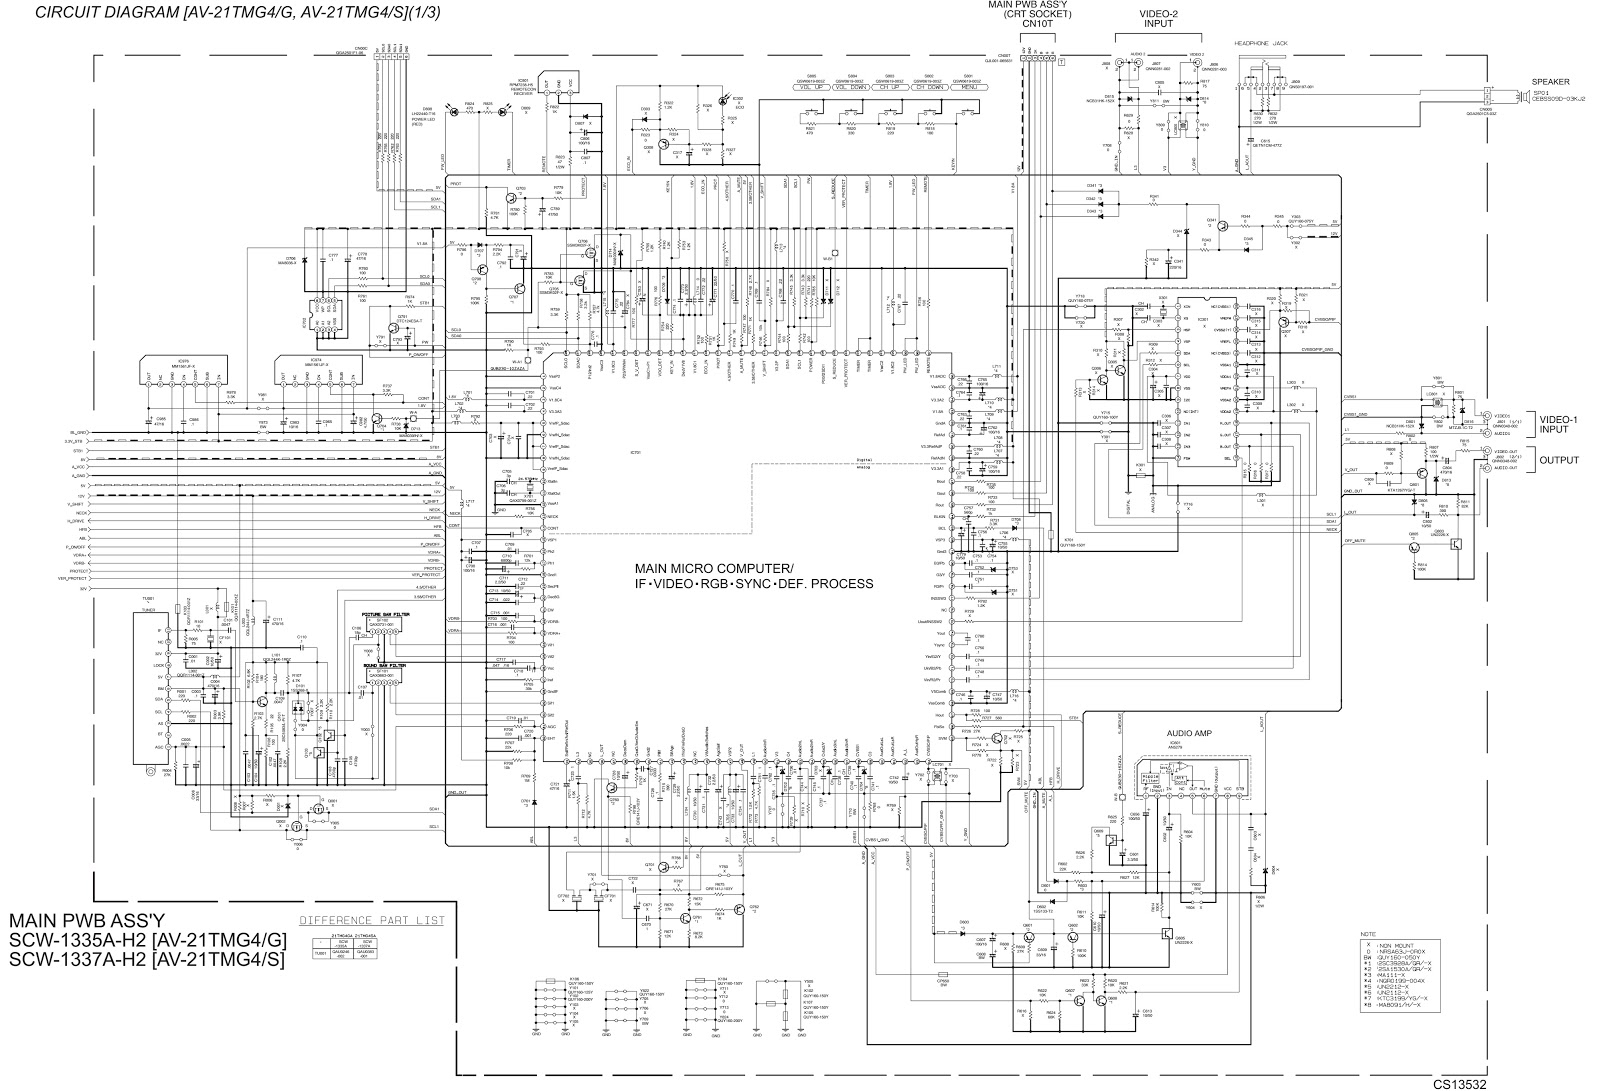 hight resolution of circuit diagram jvc tv the portal and forum of wiring diagram u2022 rh mistelectro com jvc tv circuit diagram jvc tv schematic diagram